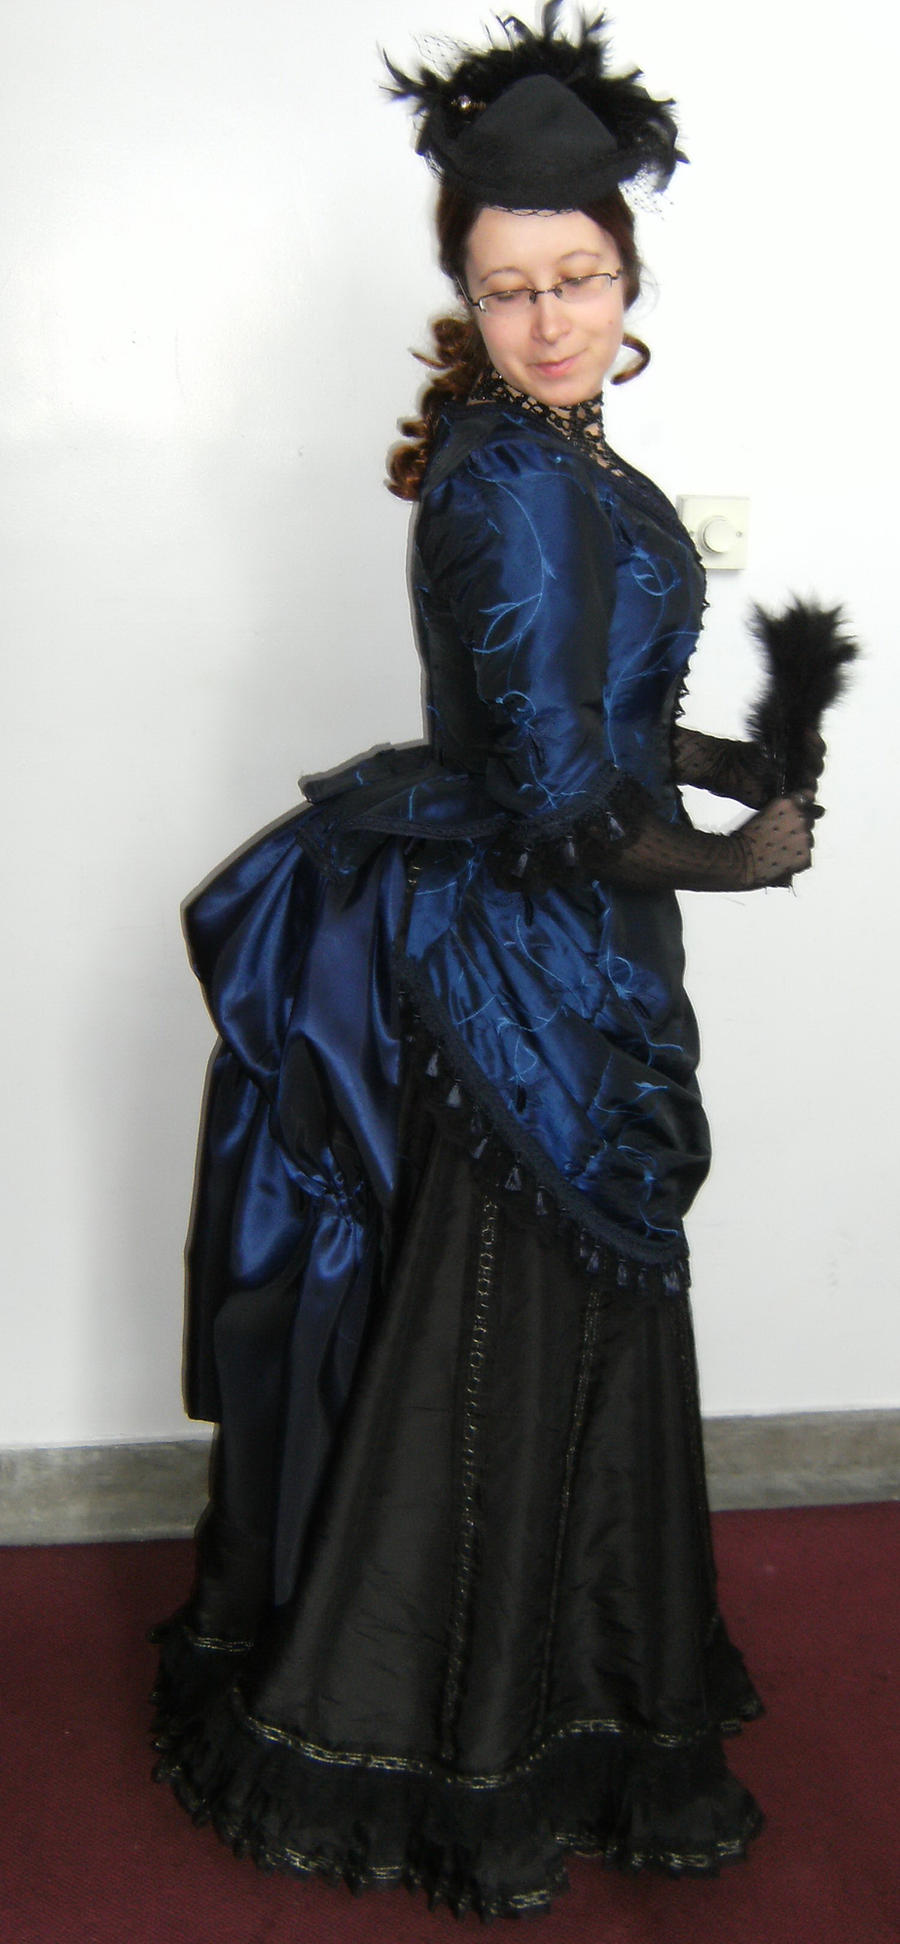 Costumes Victorian Bustle Dress Gowns 1900 Reenacting dress andVictorian Bustle Gowns